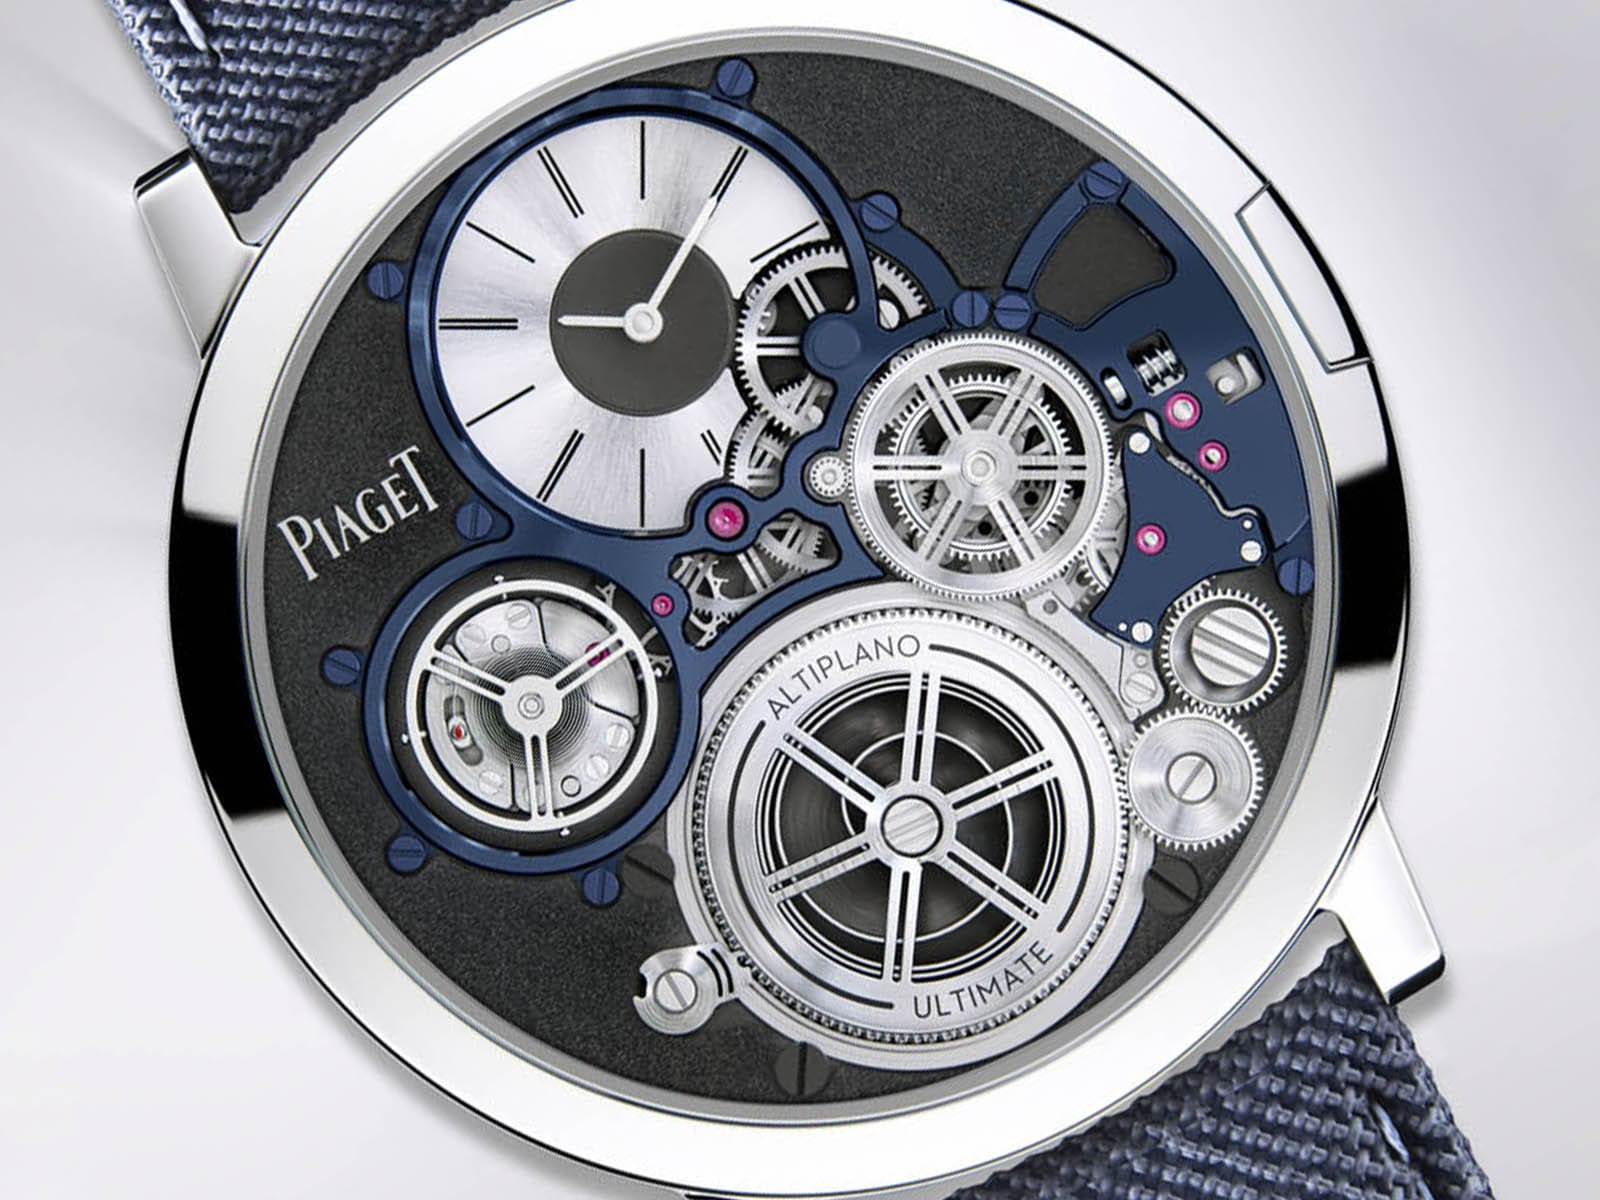 piaget-altiplano-ultimate-concept-watches-wonders-2020-2.jpg